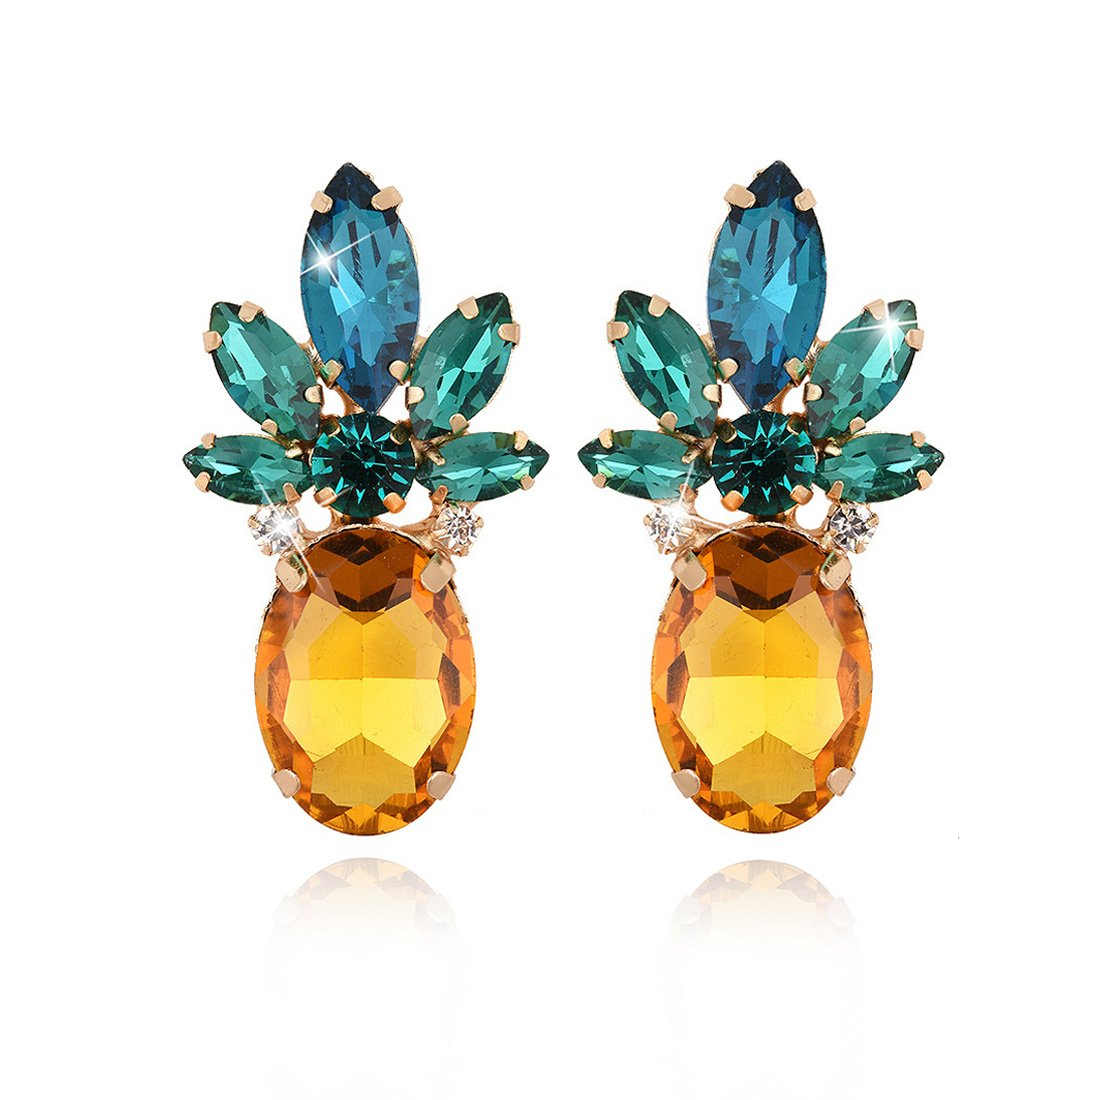 Gold Plated Rhinestone Gemstone Pineapple Design Stud Earrings for Women